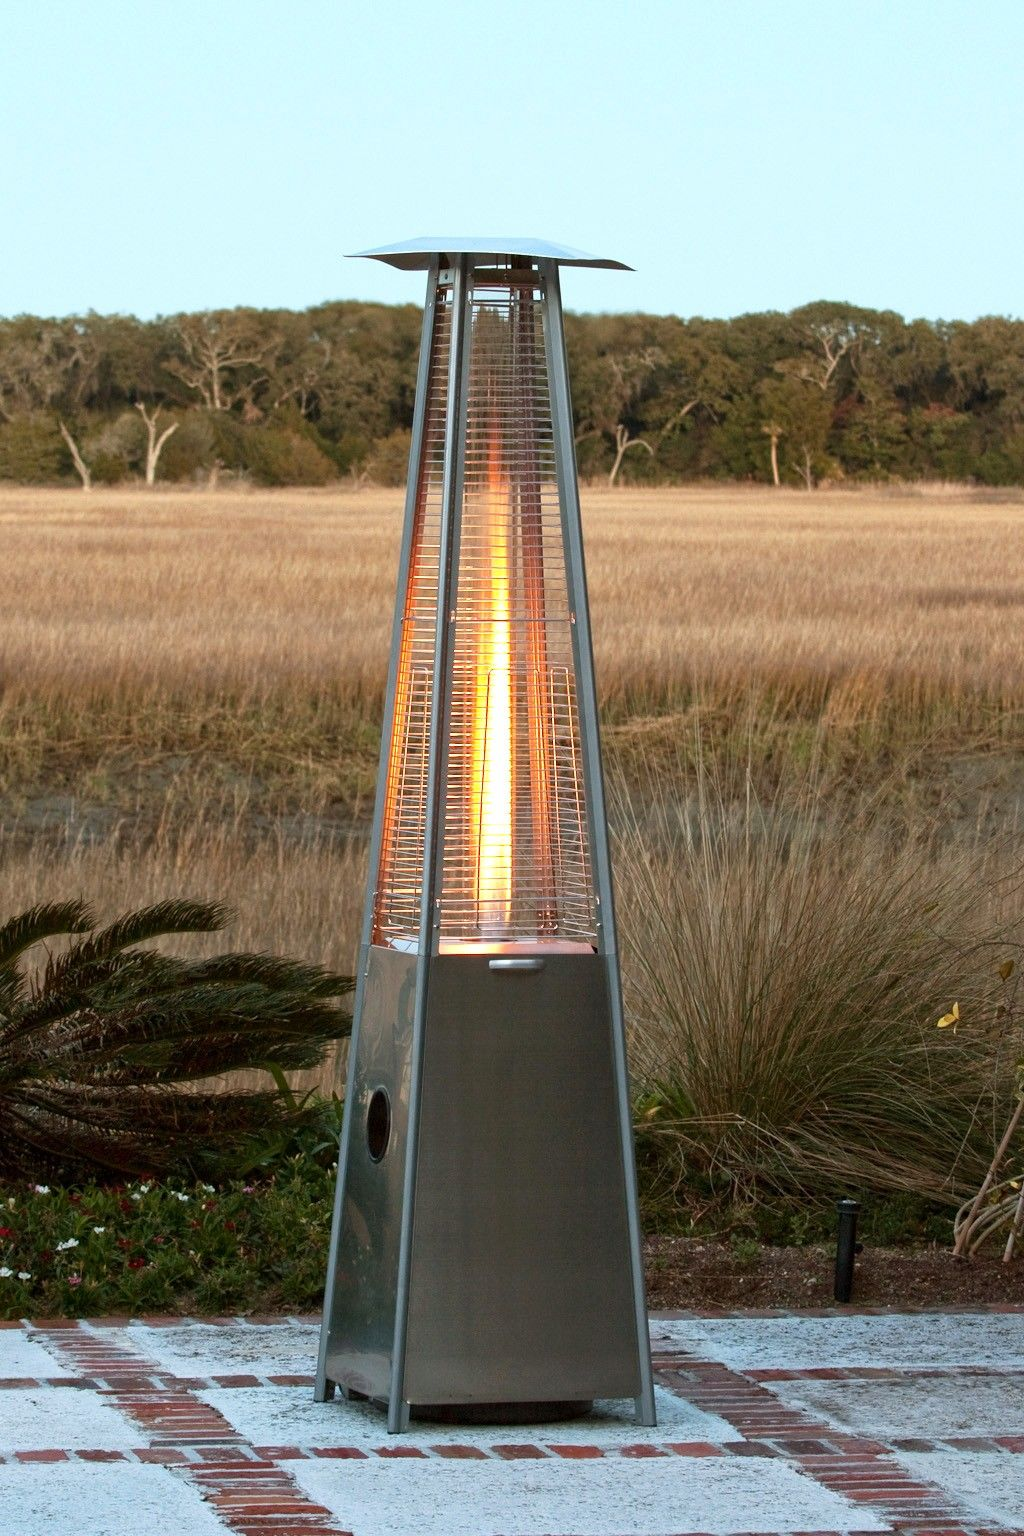 Our New Patented Stainless Steel Pyramid Flame Heater Brings A New